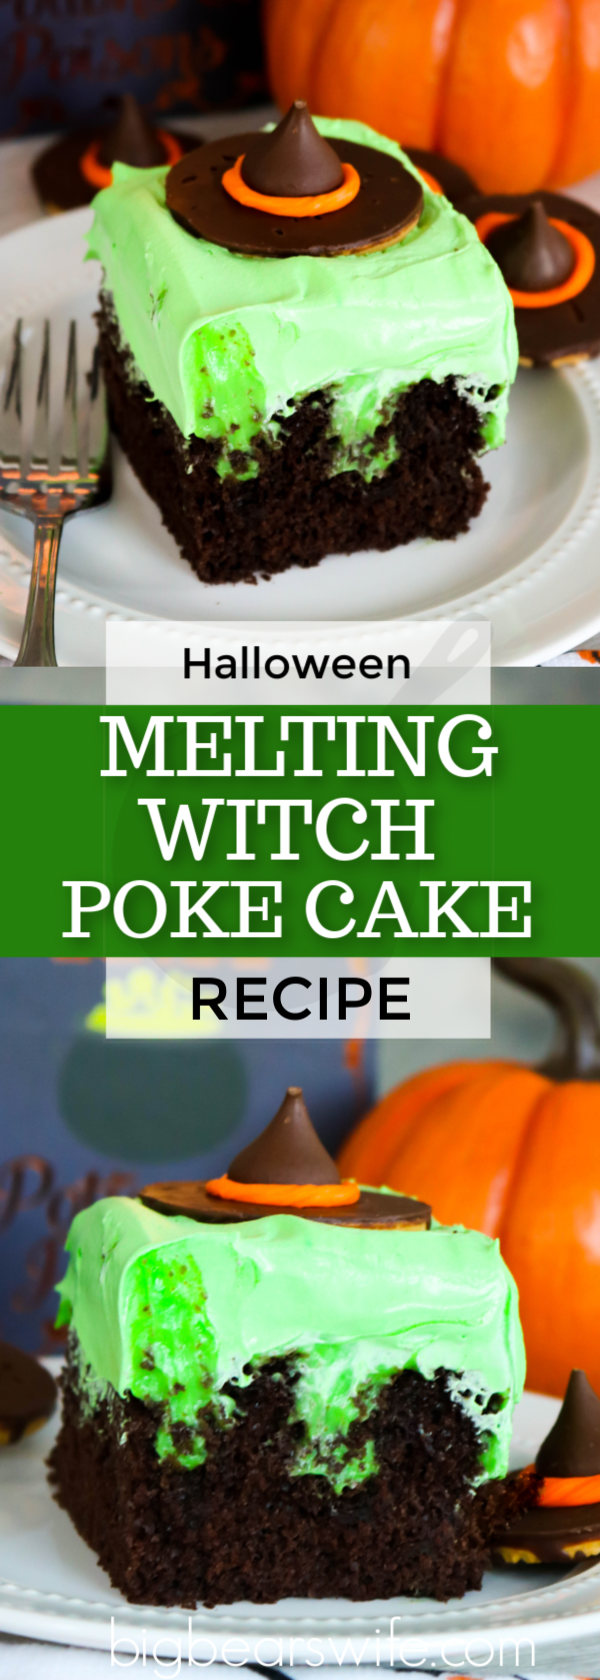 A classic southern dessert is turned into a wickedly wonderful Halloween treat with this easy Melting Witch Poke Cake! #MeltingWitch #PokeCake #Halloween via @bigbearswife